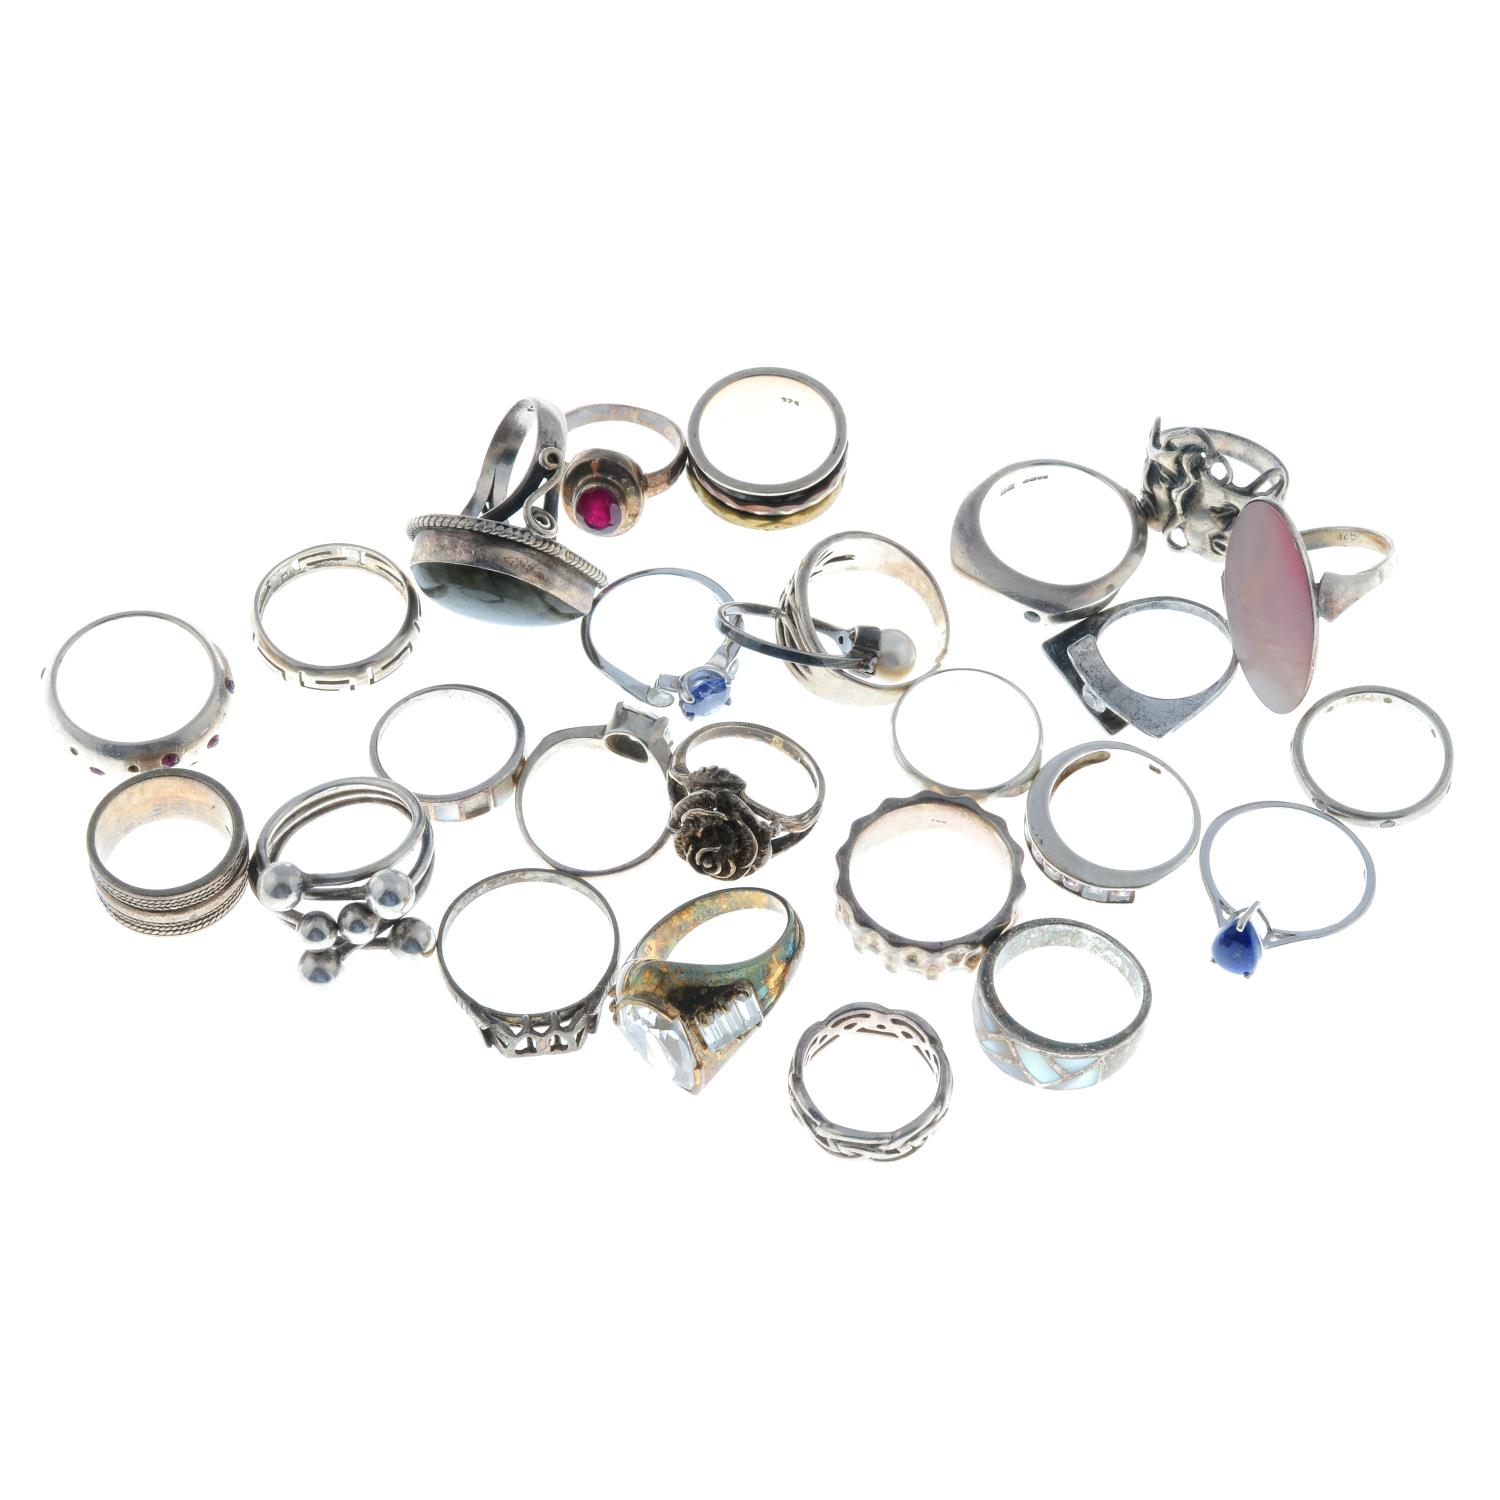 A selection of many gem-set rings, to include a lapis lazuli ring. - Image 2 of 2